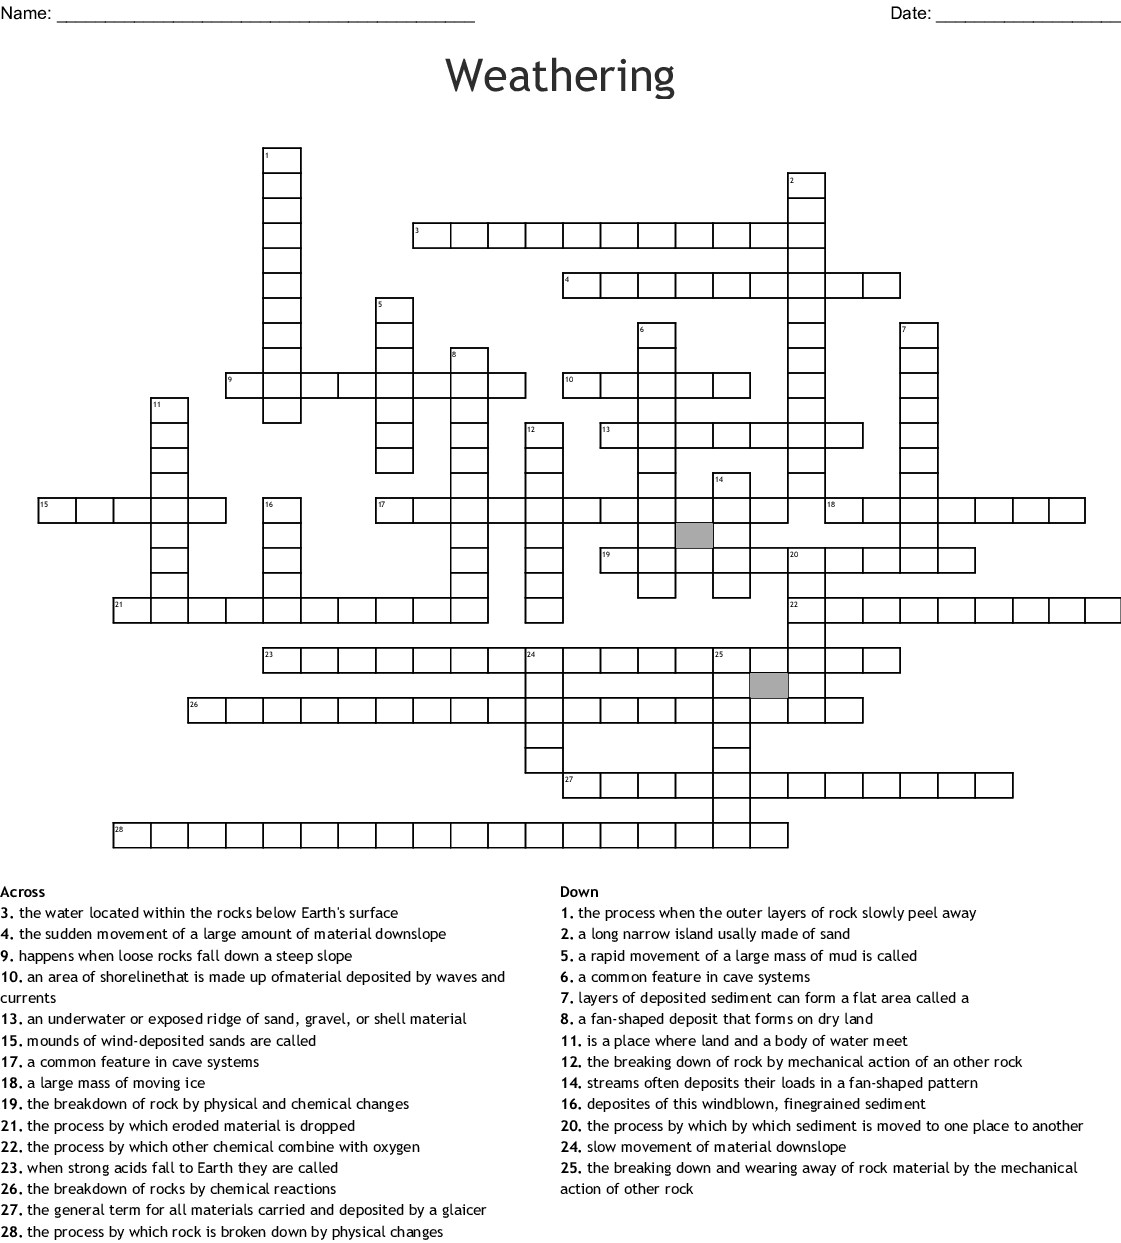 Weathering Erosion And Deposition Word Search